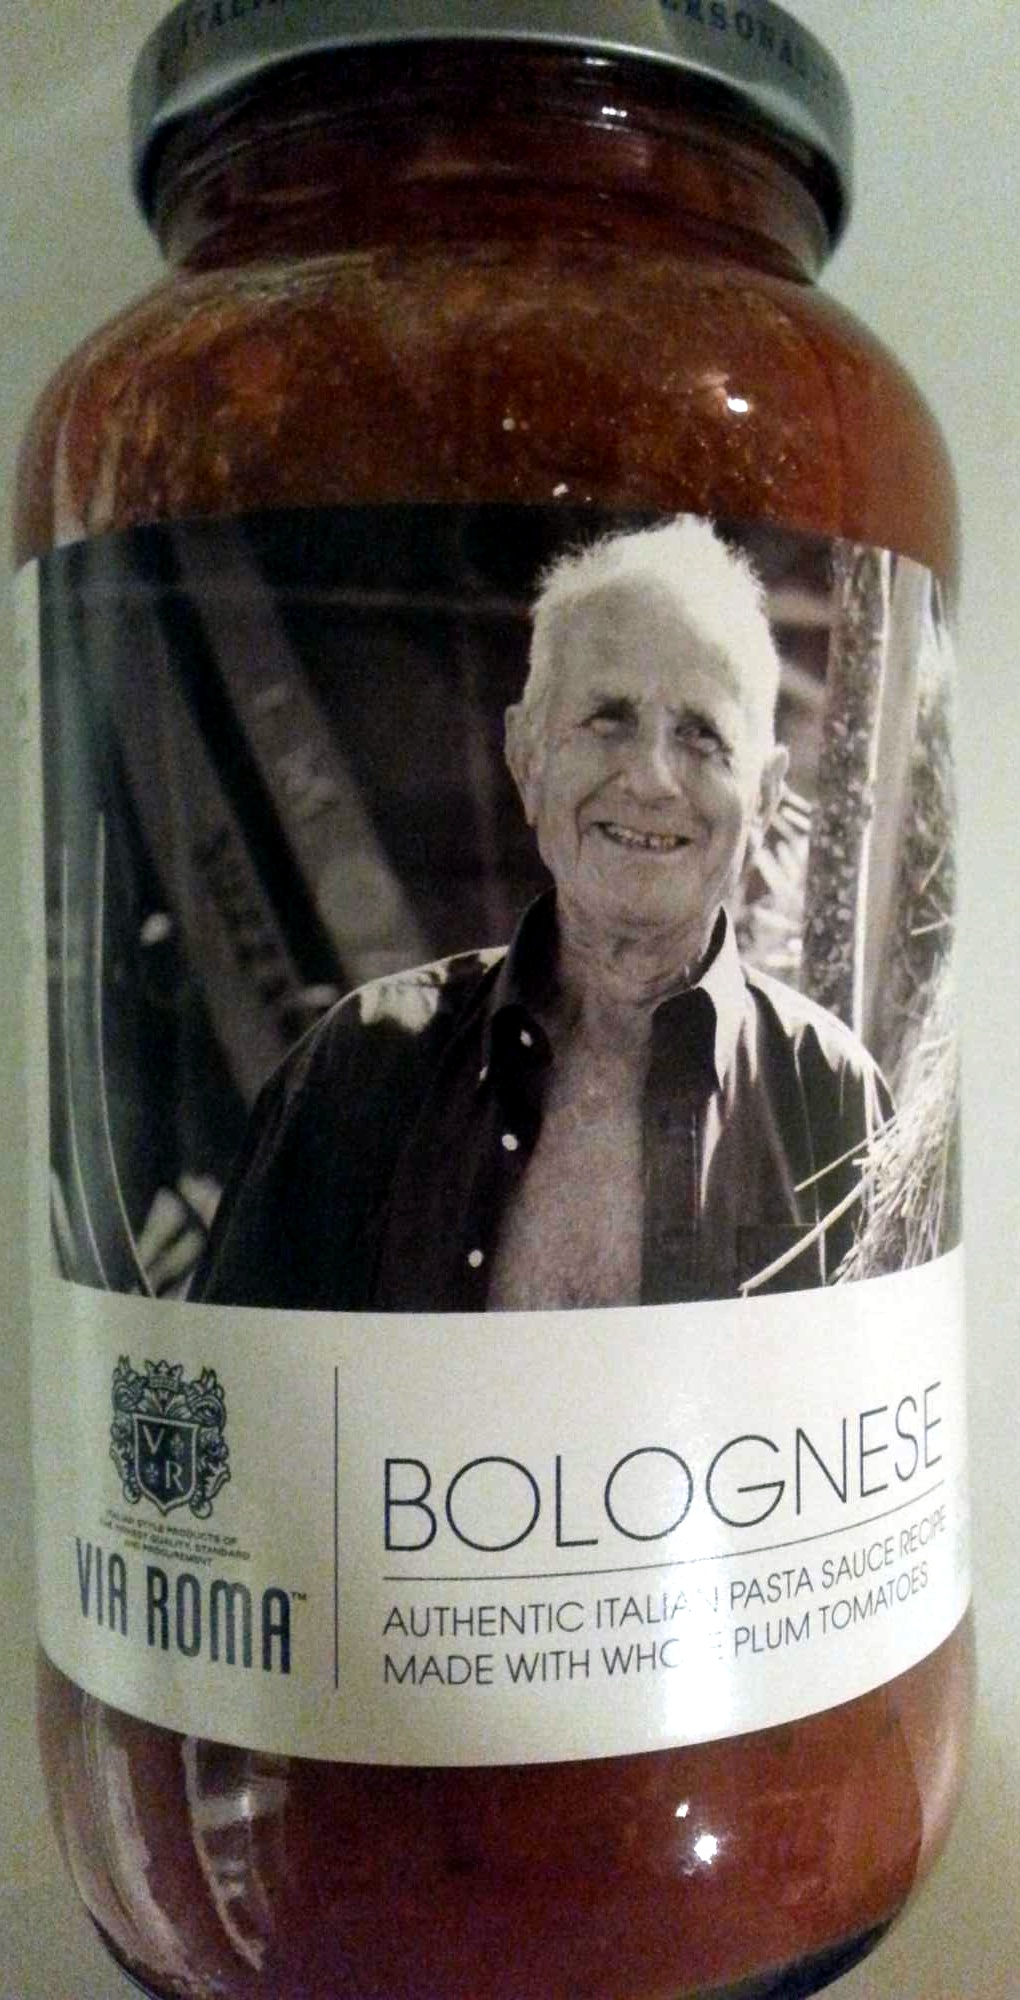 Bolognese Authentic Italian Pasta Sauce - Product